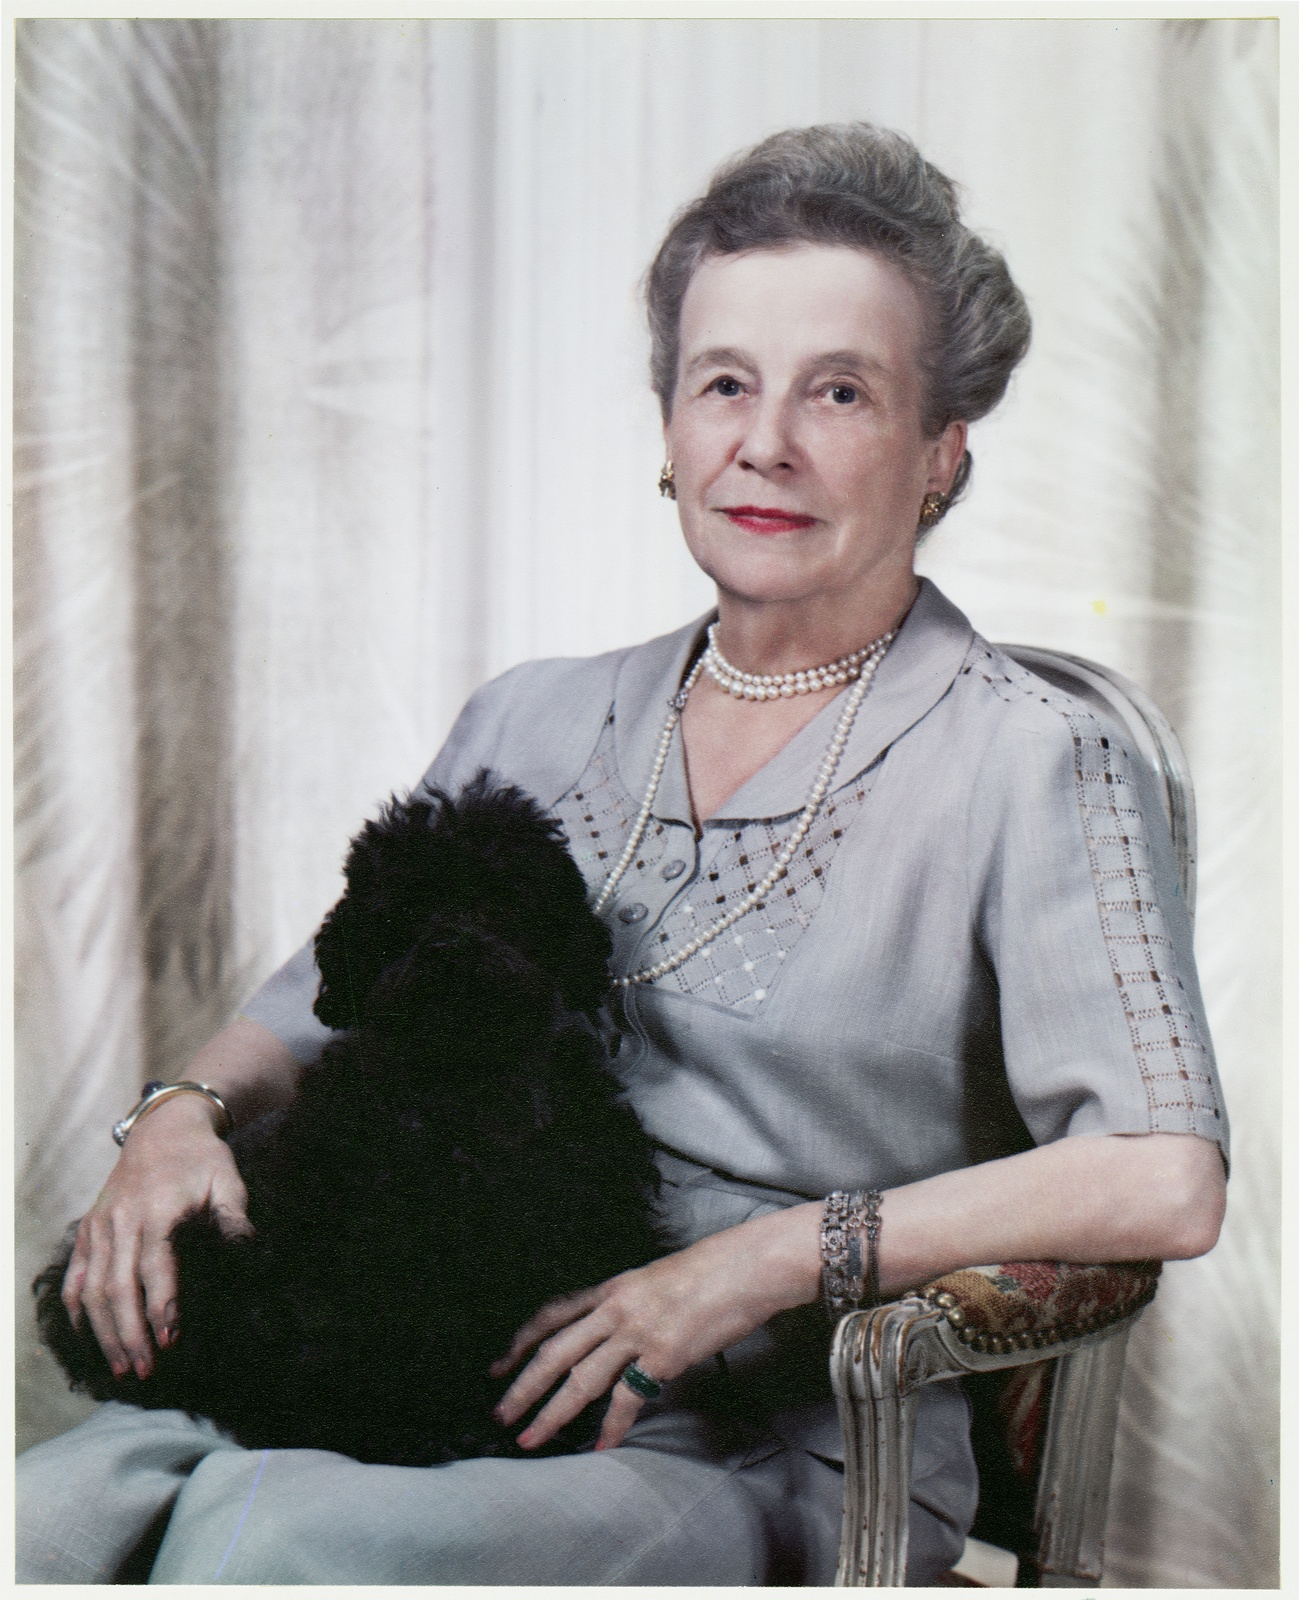 001-Julie Penrose and dog.jpg